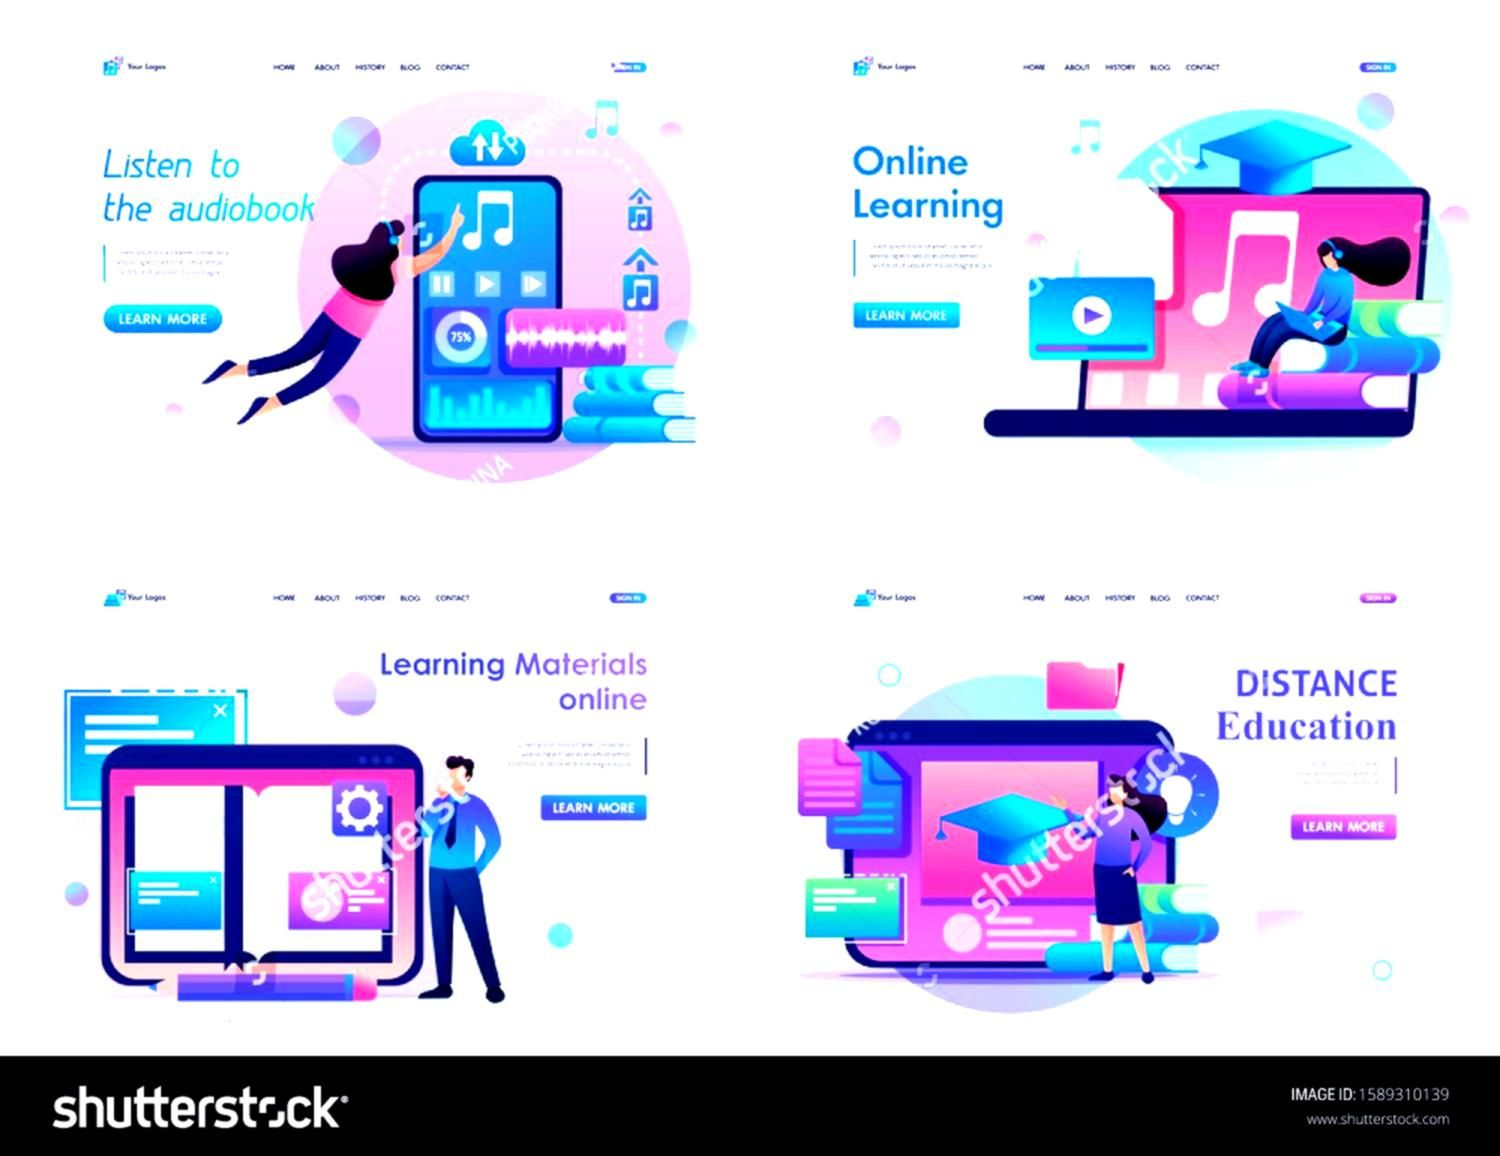 Distancelearningconceptsset Selfeducation Sponsored Concepts Distance Learning Landing Design Flat Page Set And For Web 2dset 2d Flat Concepts Di 2020